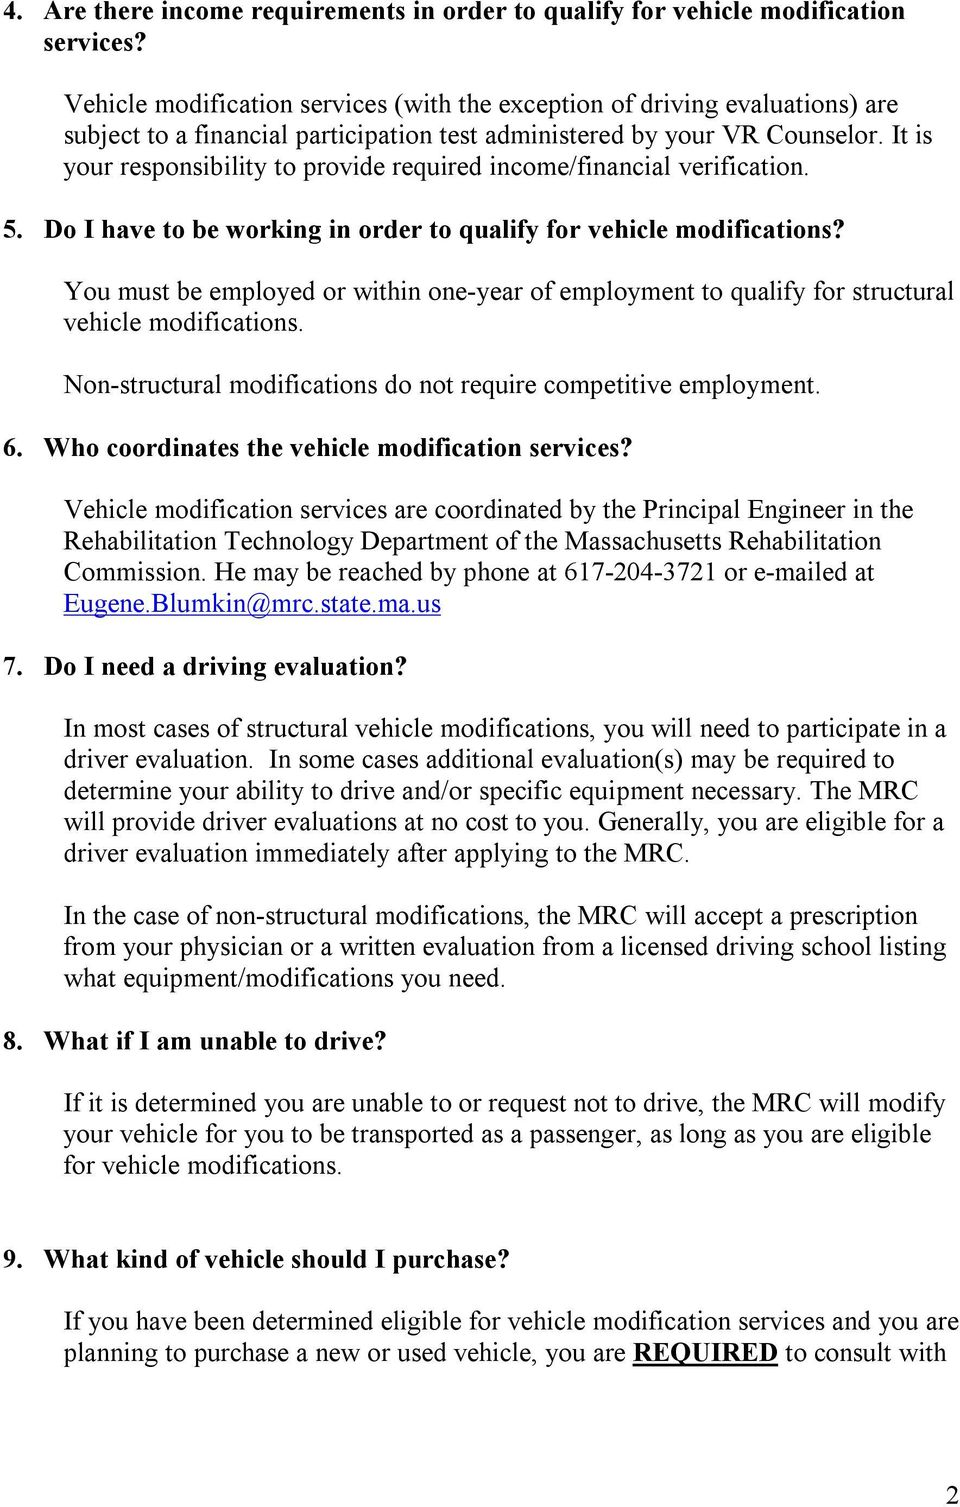 It is your responsibility to provide required income/financial verification. 5. Do I have to be working in order to qualify for vehicle modifications?